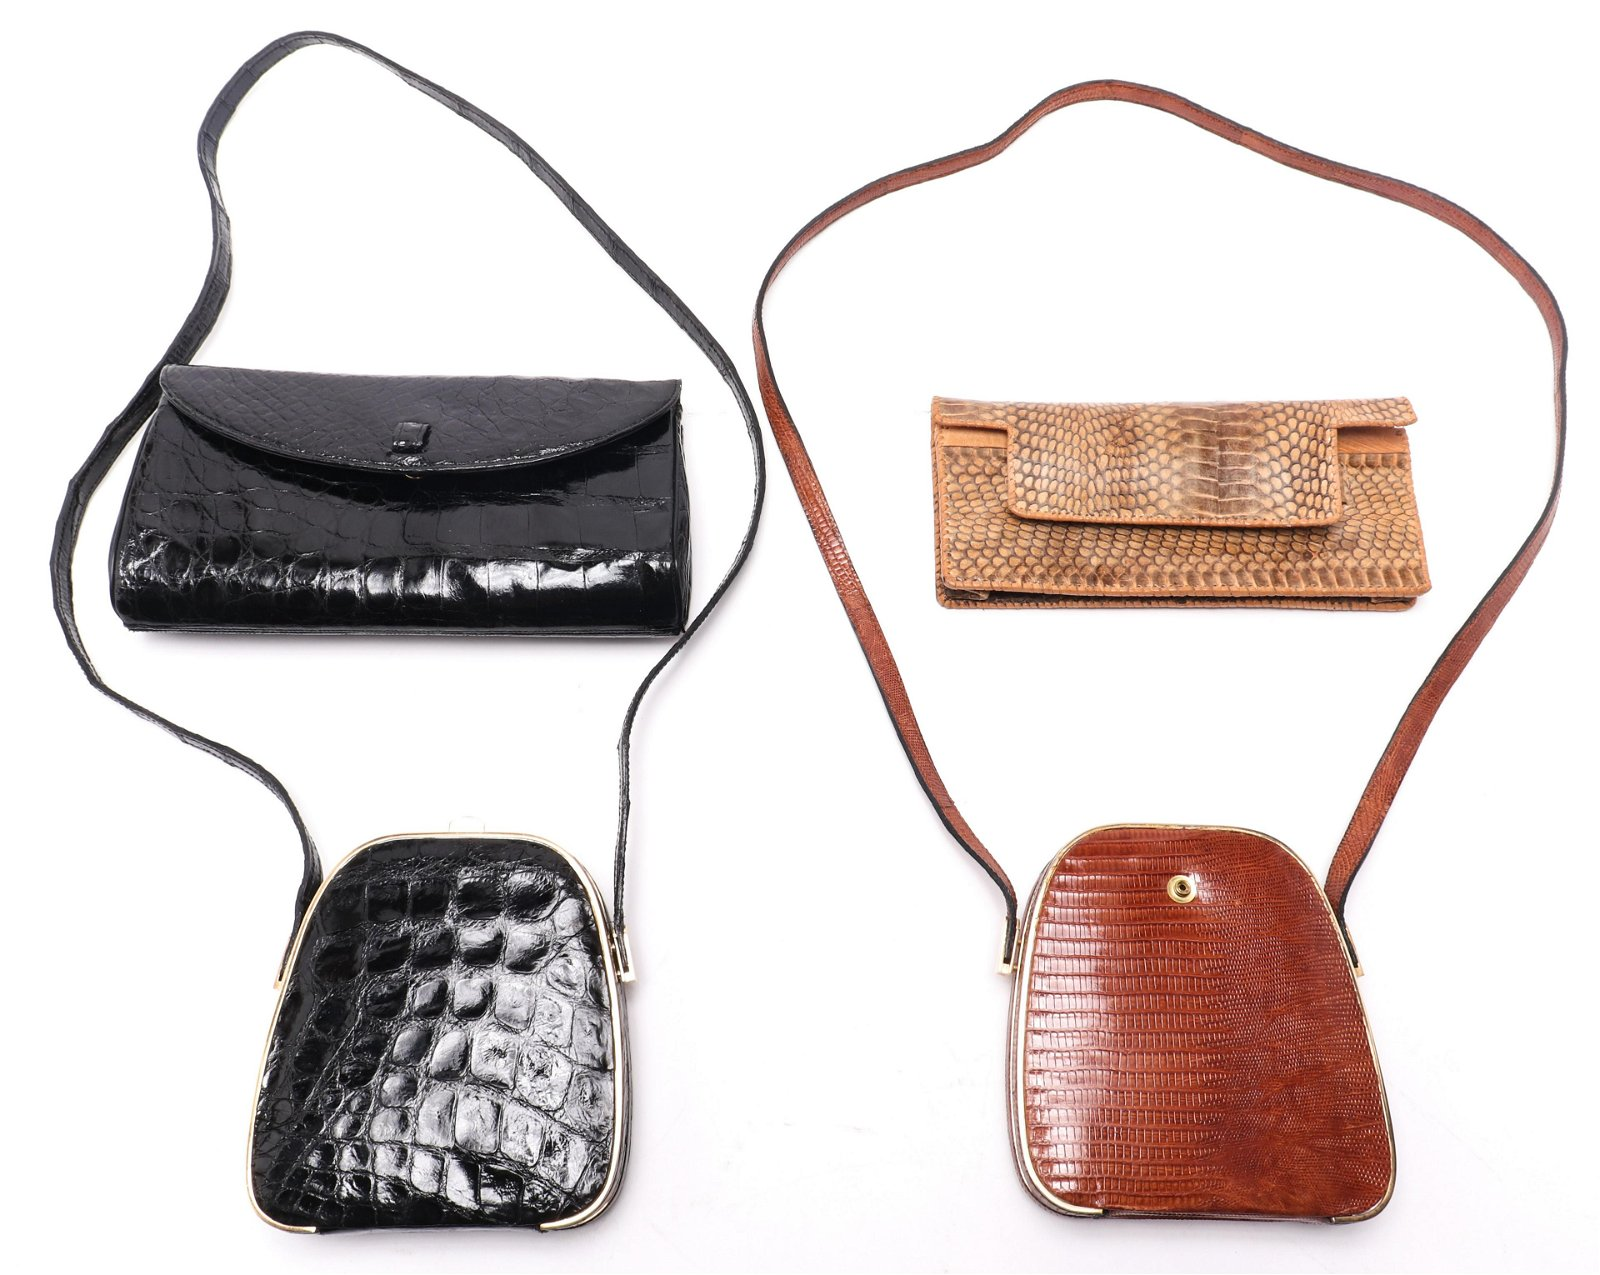 Reptile Leather Handbags incl. Mayer, Group of 4